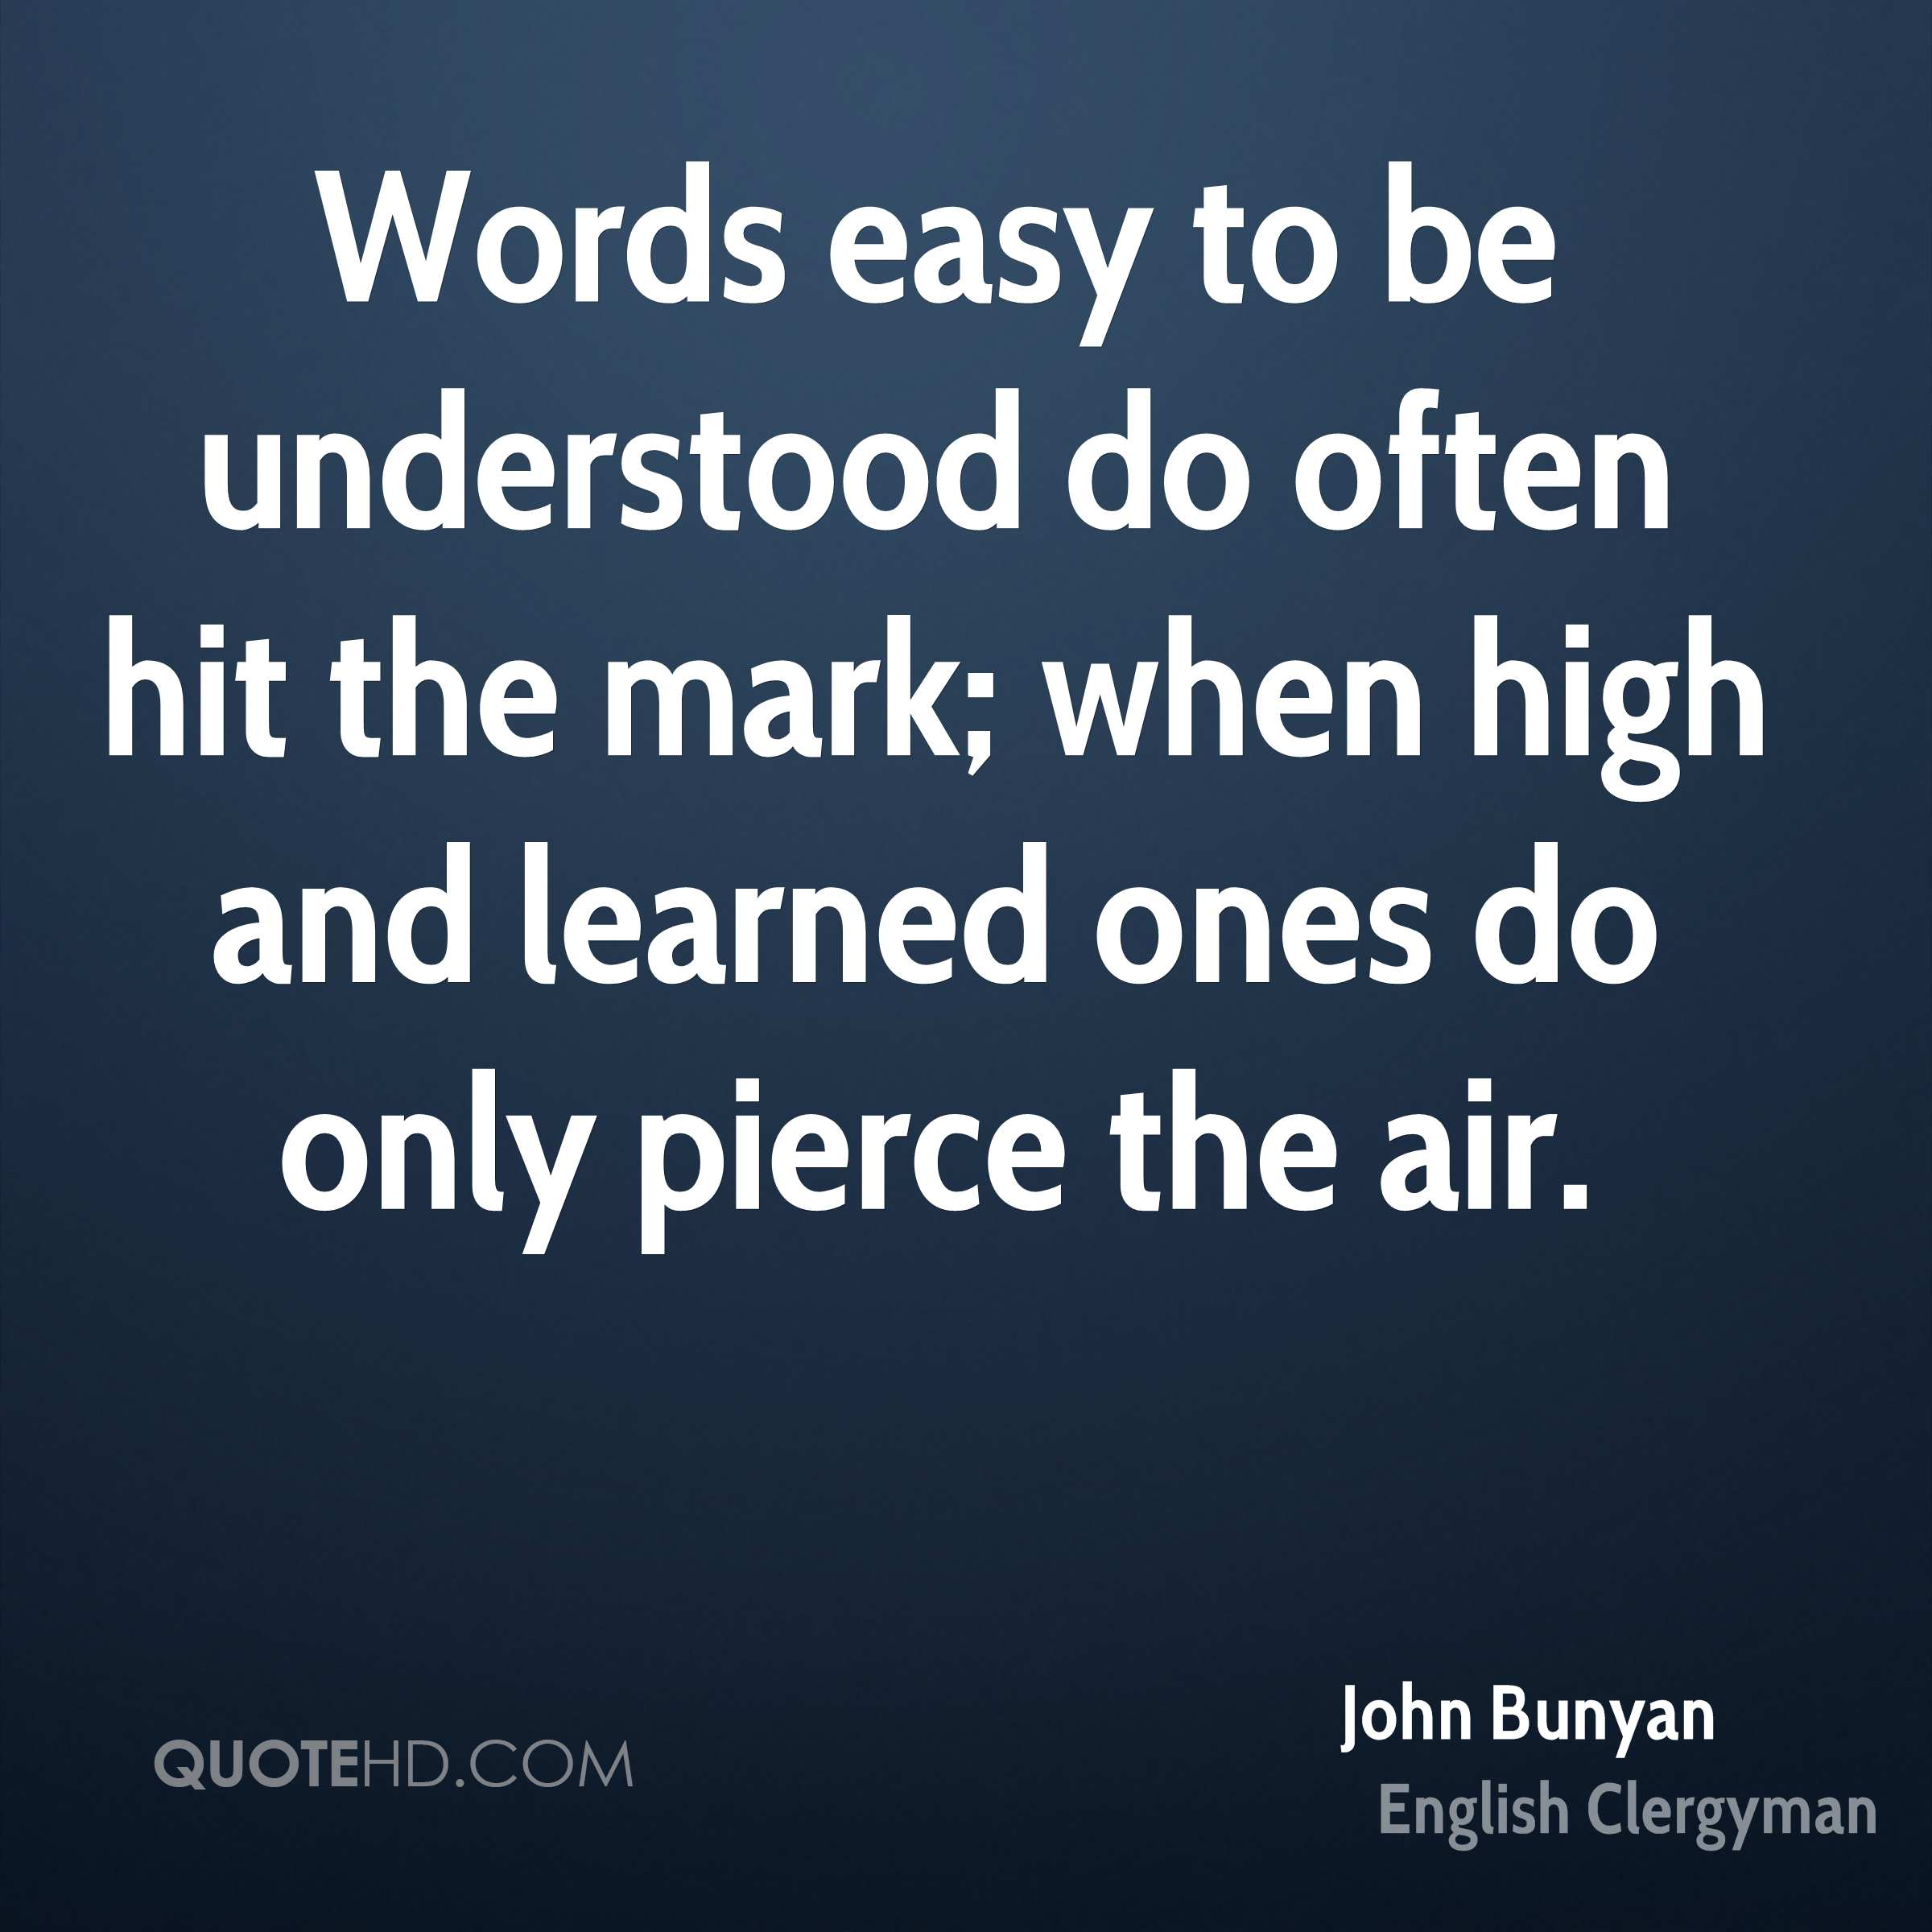 Words easy to be understood do often hit the mark; when high and learned ones do only pierce the air.